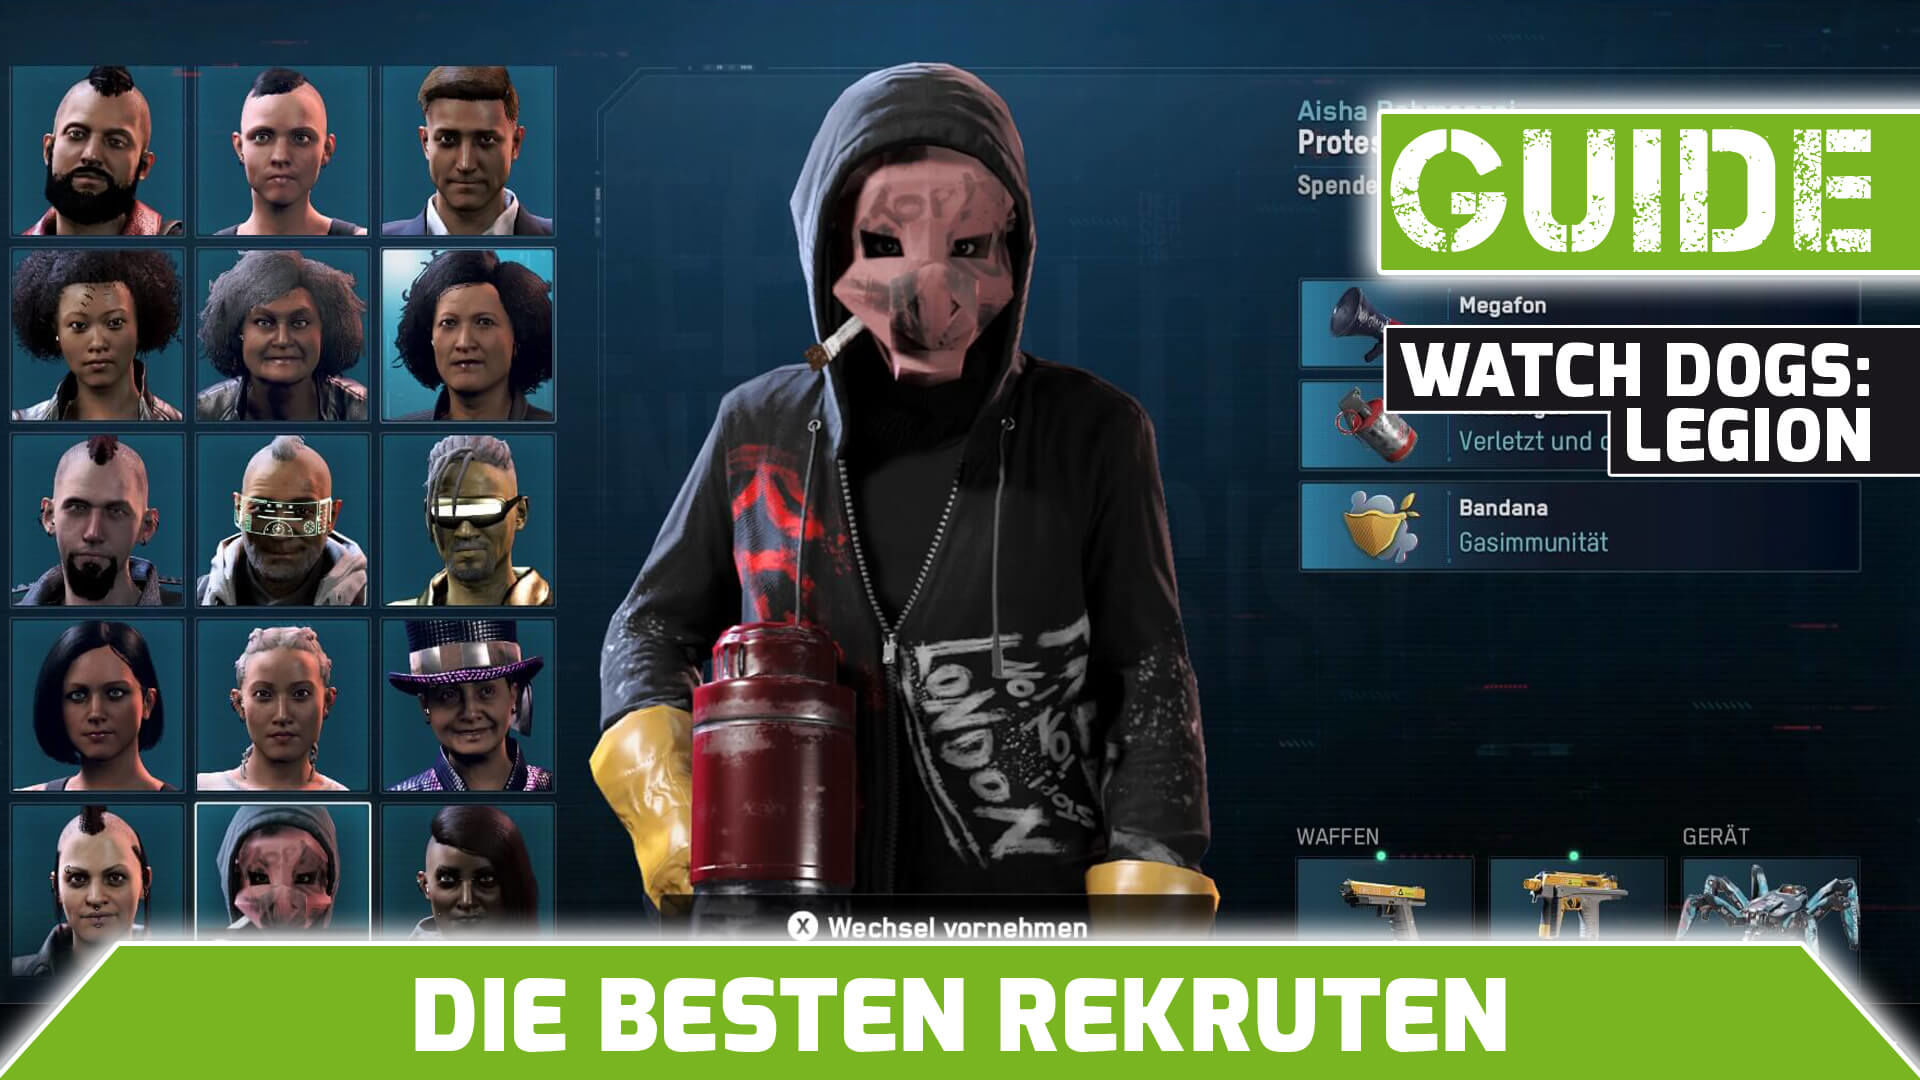 watchdogs-legion-beste-rekruten